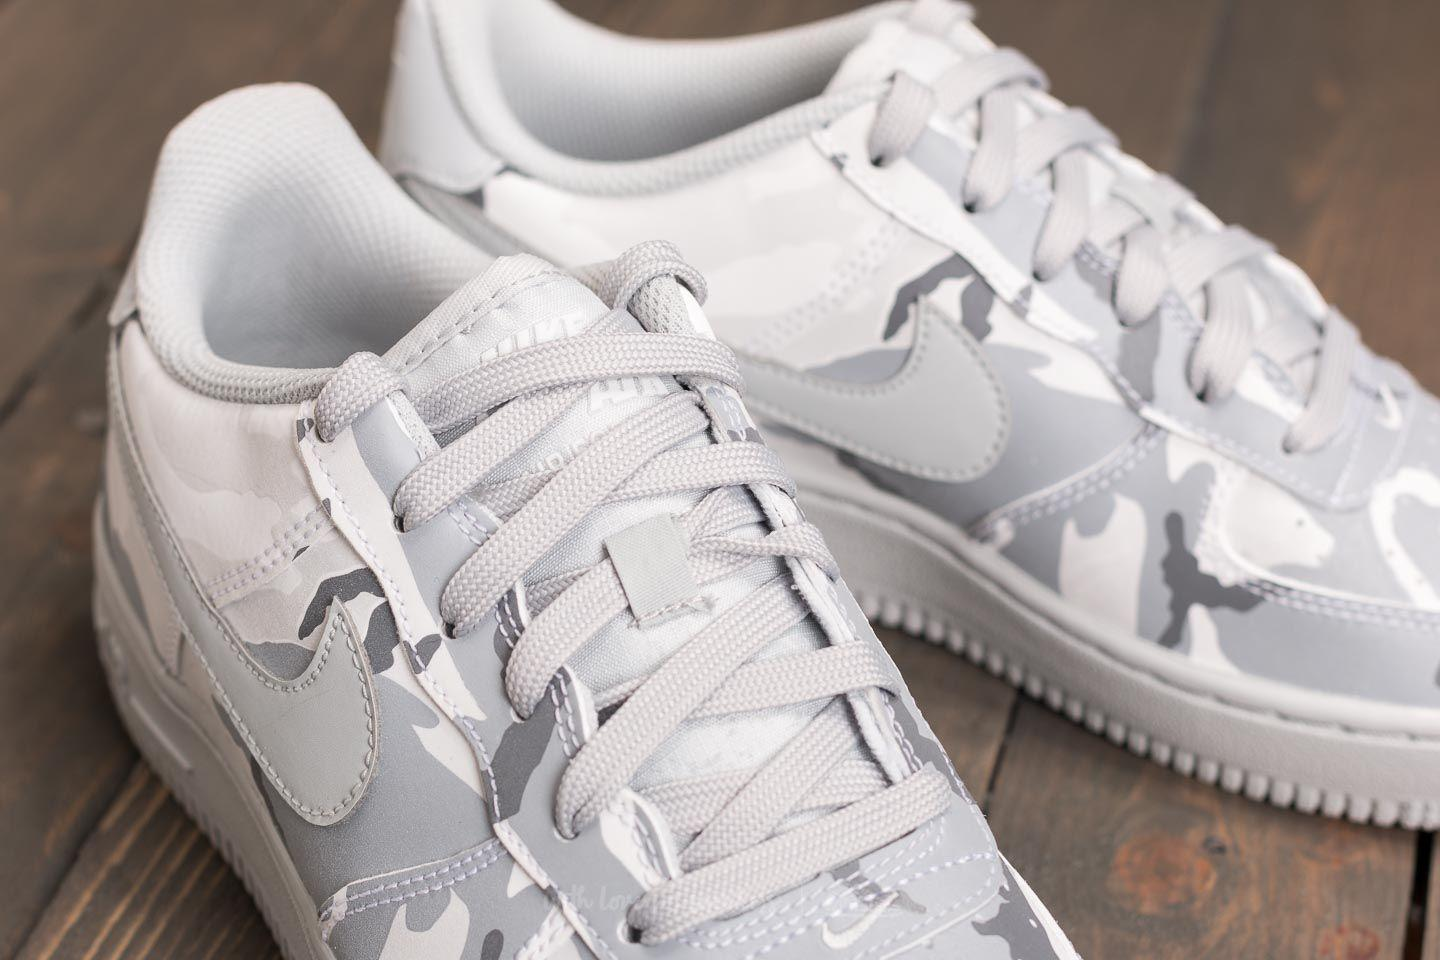 d1f2c3a25c1 Lyst - Nike Air Force 1 Lv8 (gs) White  Pure Platinum-wolf Grey in ...